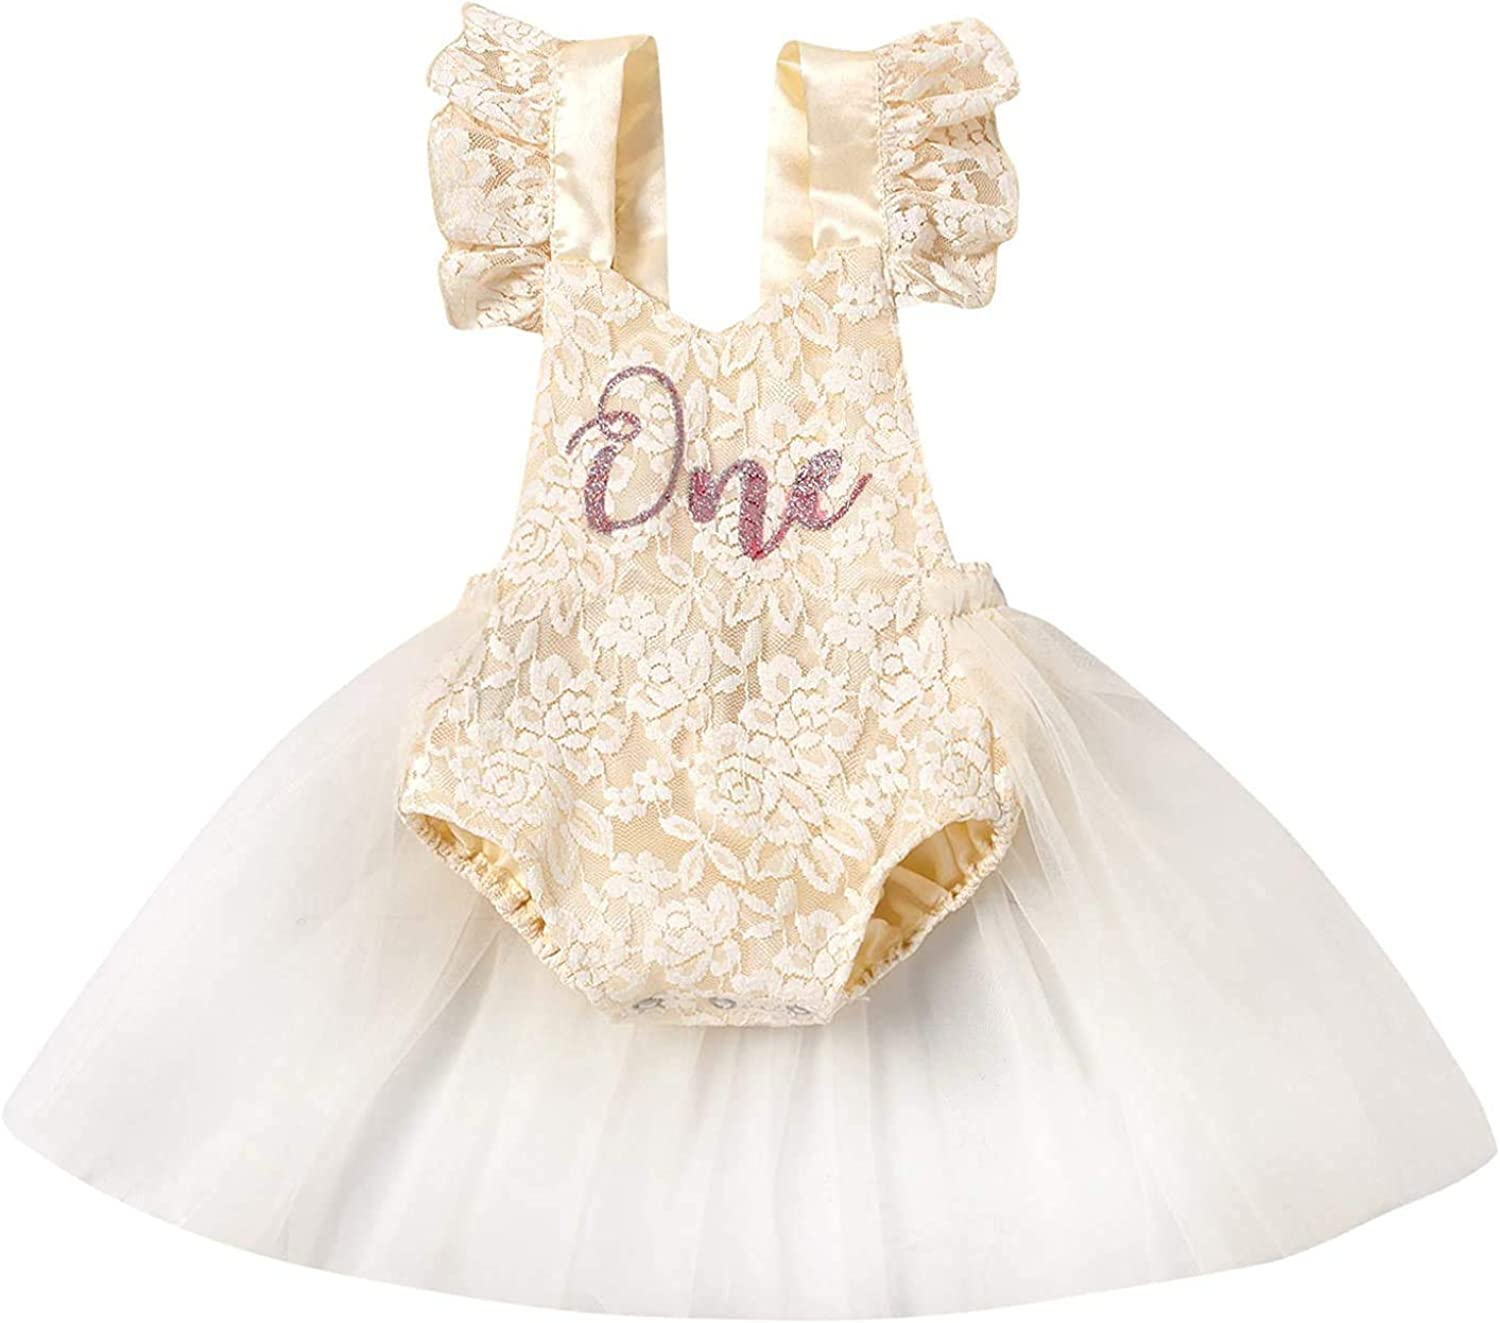 Baby Girl Unicorn Max 71% OFF Outfit Infant Romper+Tutu Sparkle 2021new shipping free Birthday 1st